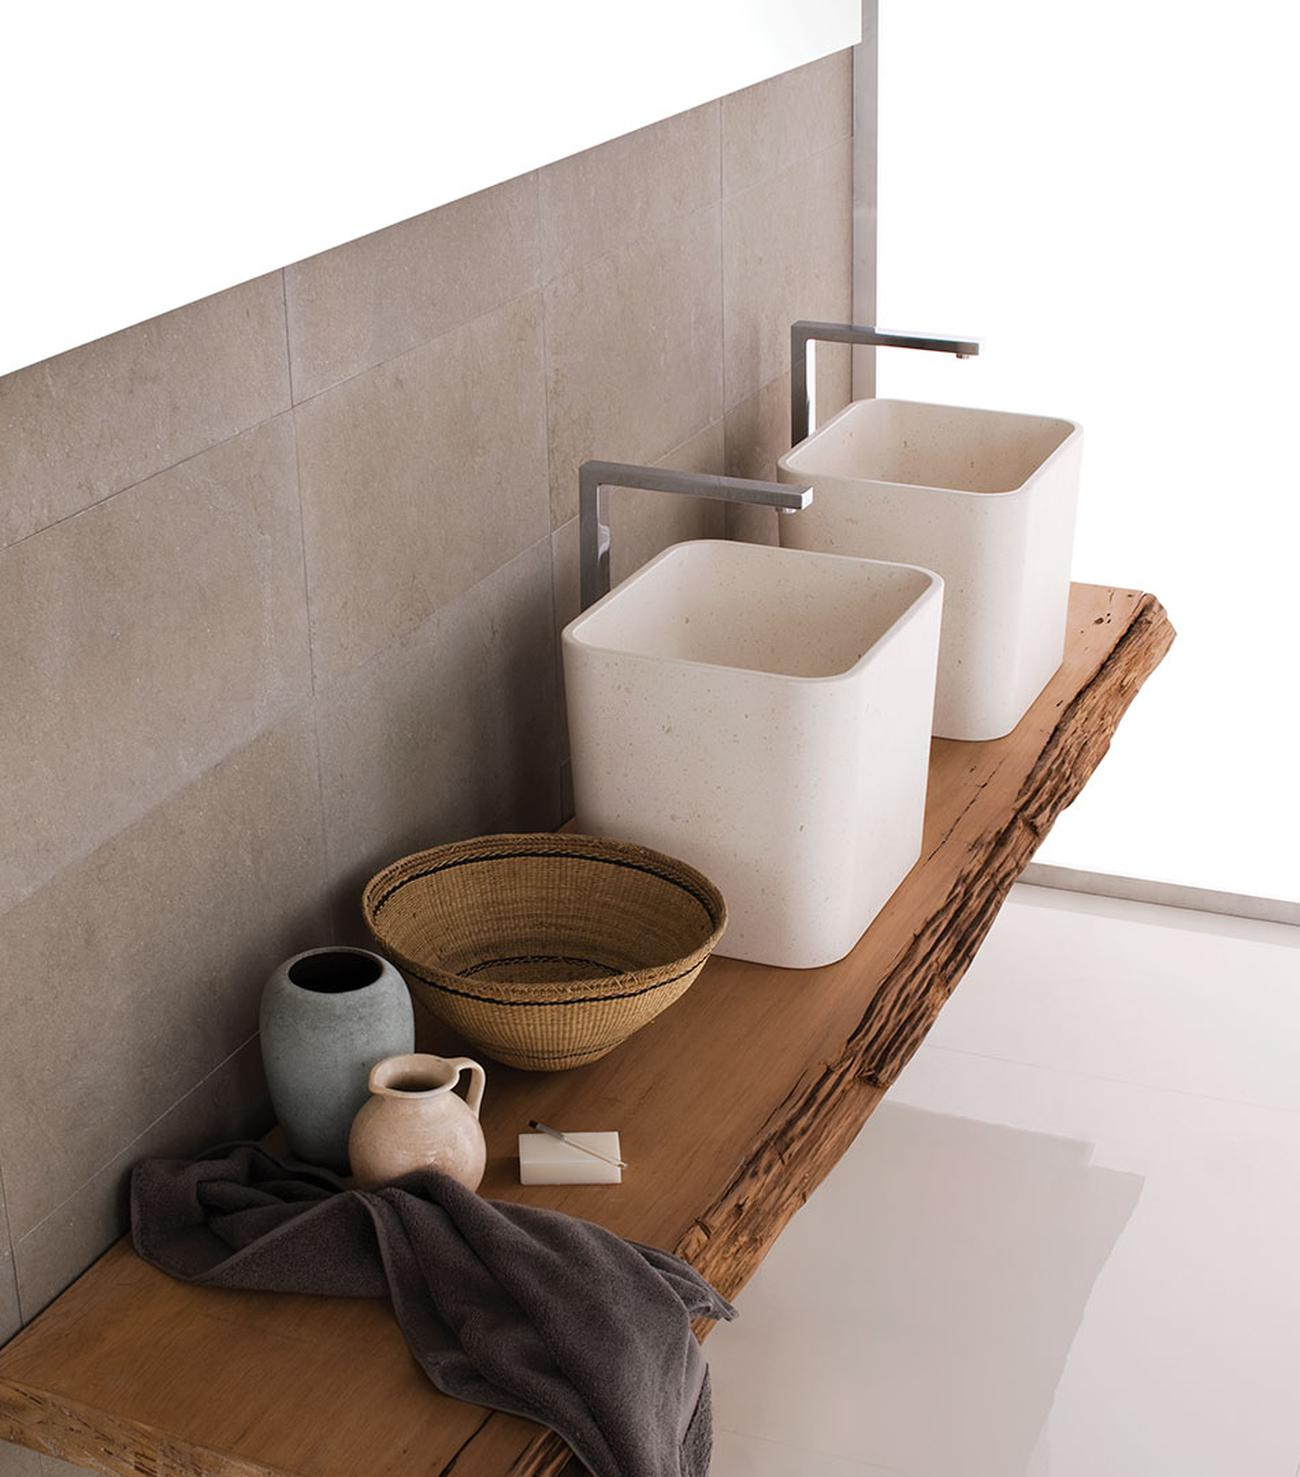 Duo sanitary ware for Neutra, 2009